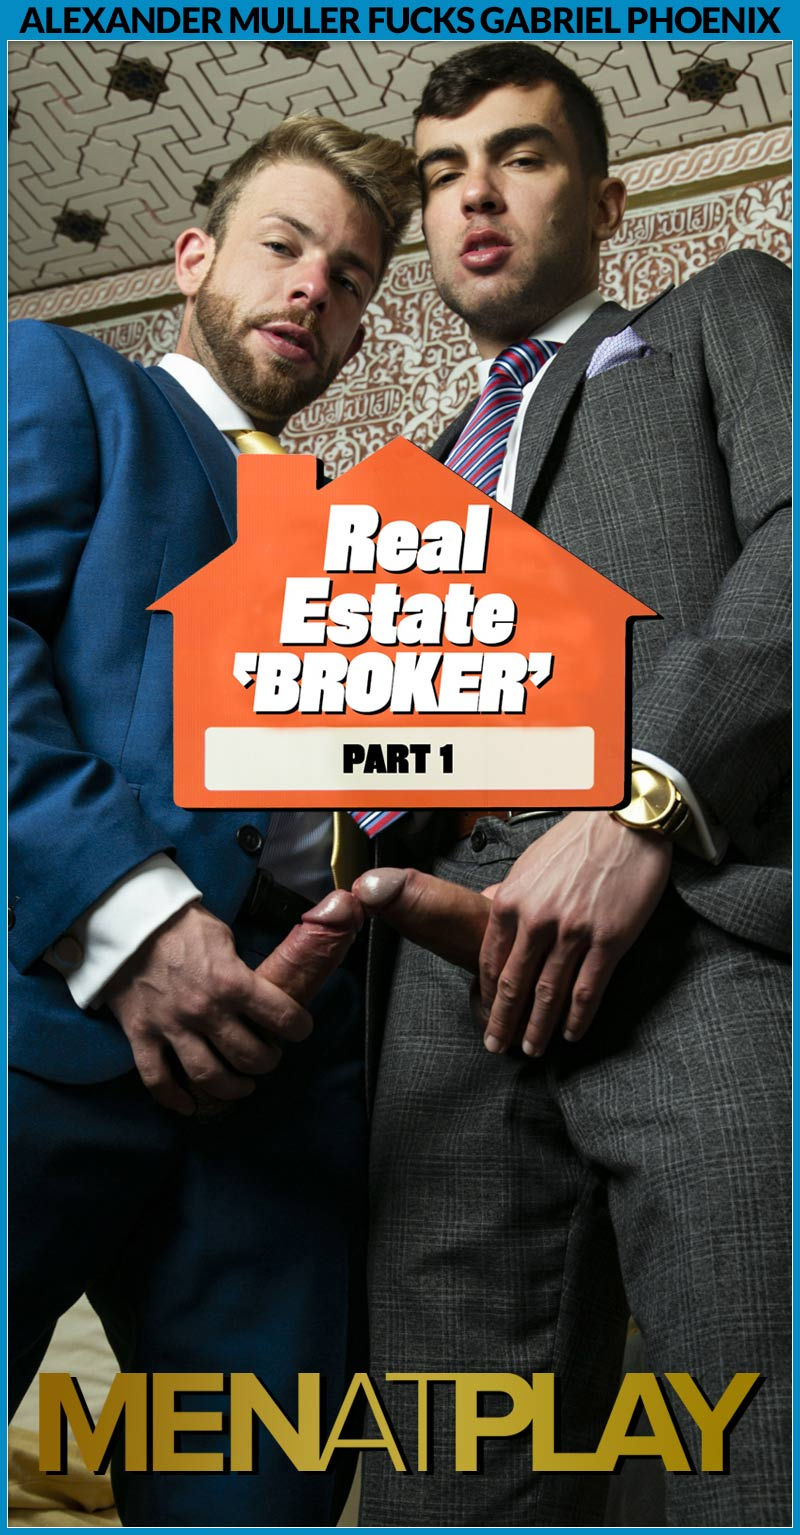 REAL ESTATE BROKER, Part One (Alexander Muller Fucks Gabriel Phoenix) on MenAtPlay